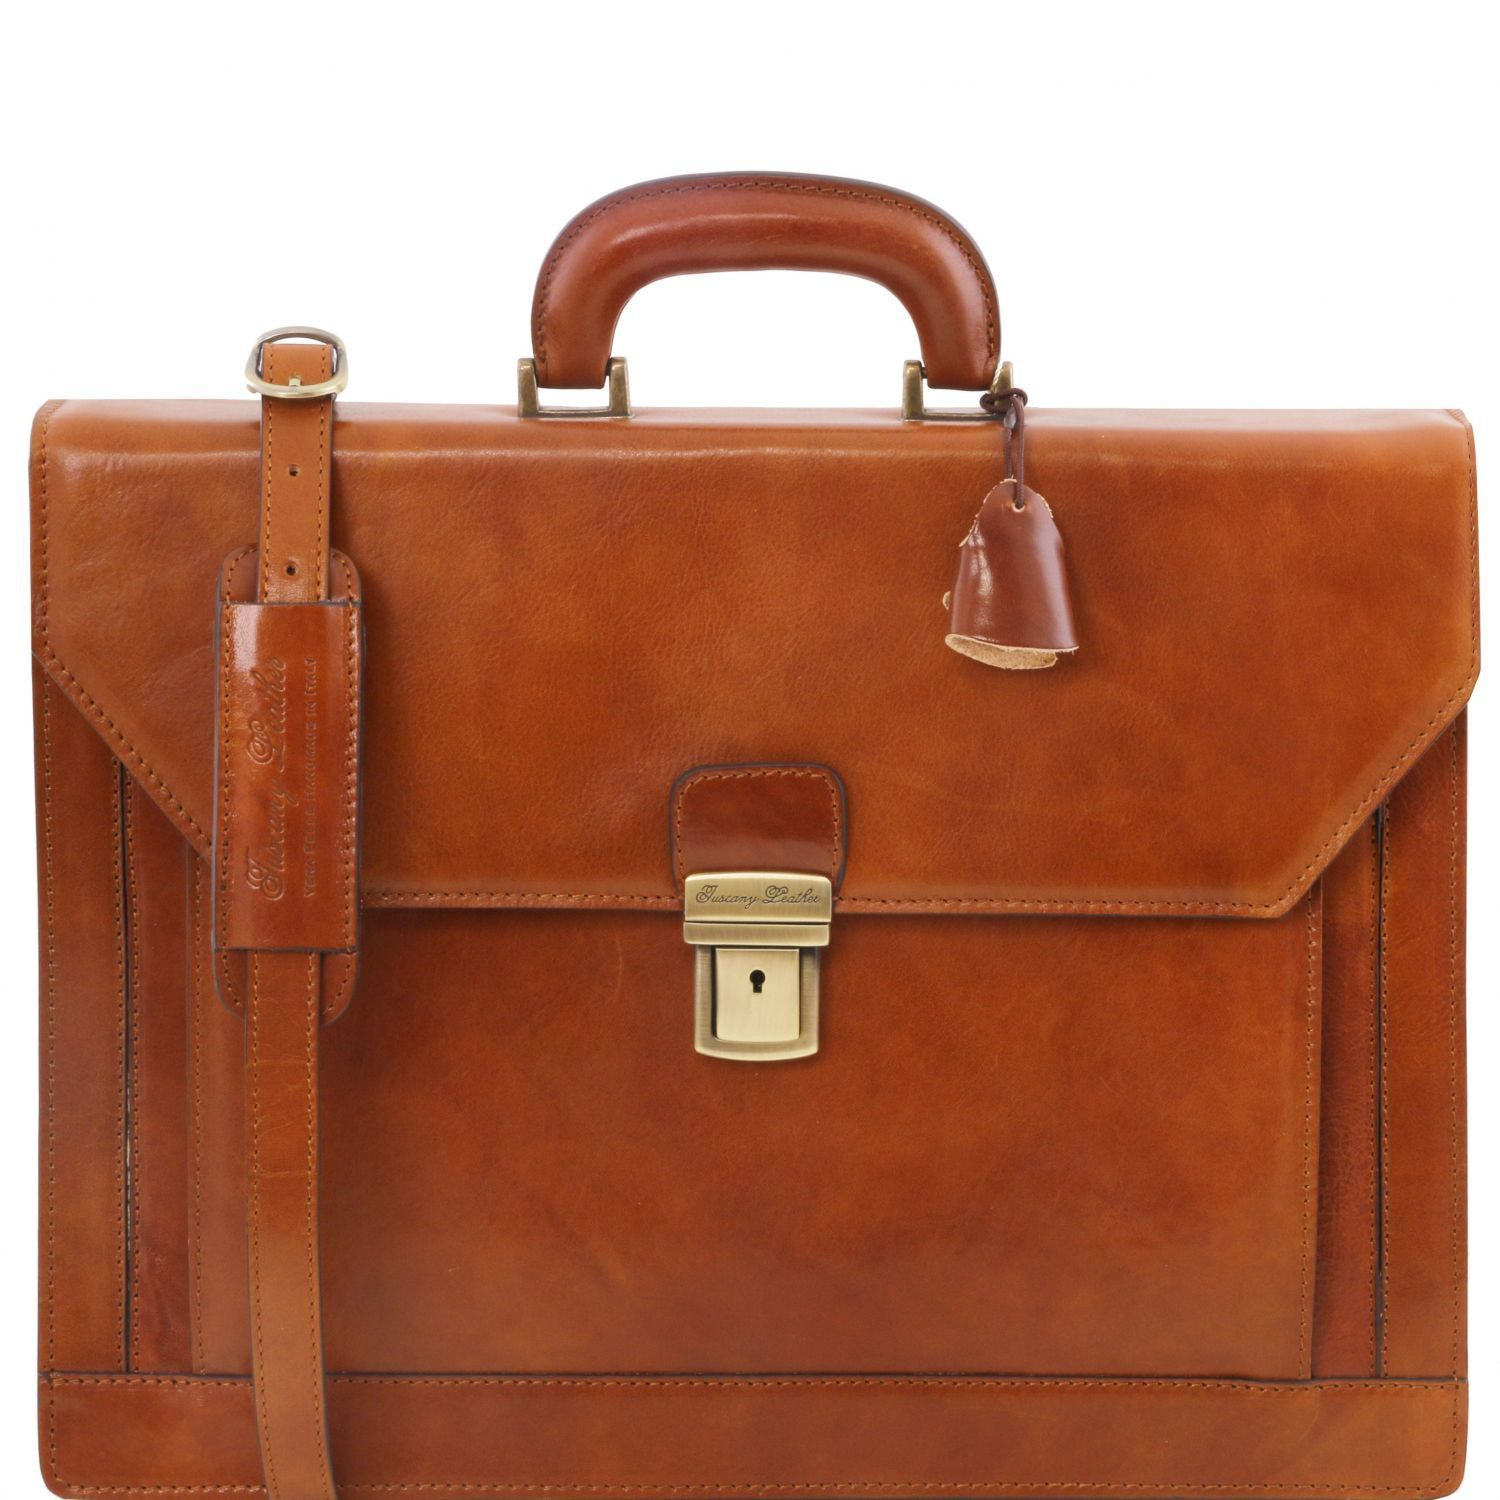 Tuscany Leather 'Napoli' 2 Compartments Leather Briefcase With Front Pocket Briefcase Tuscany Leather Honey